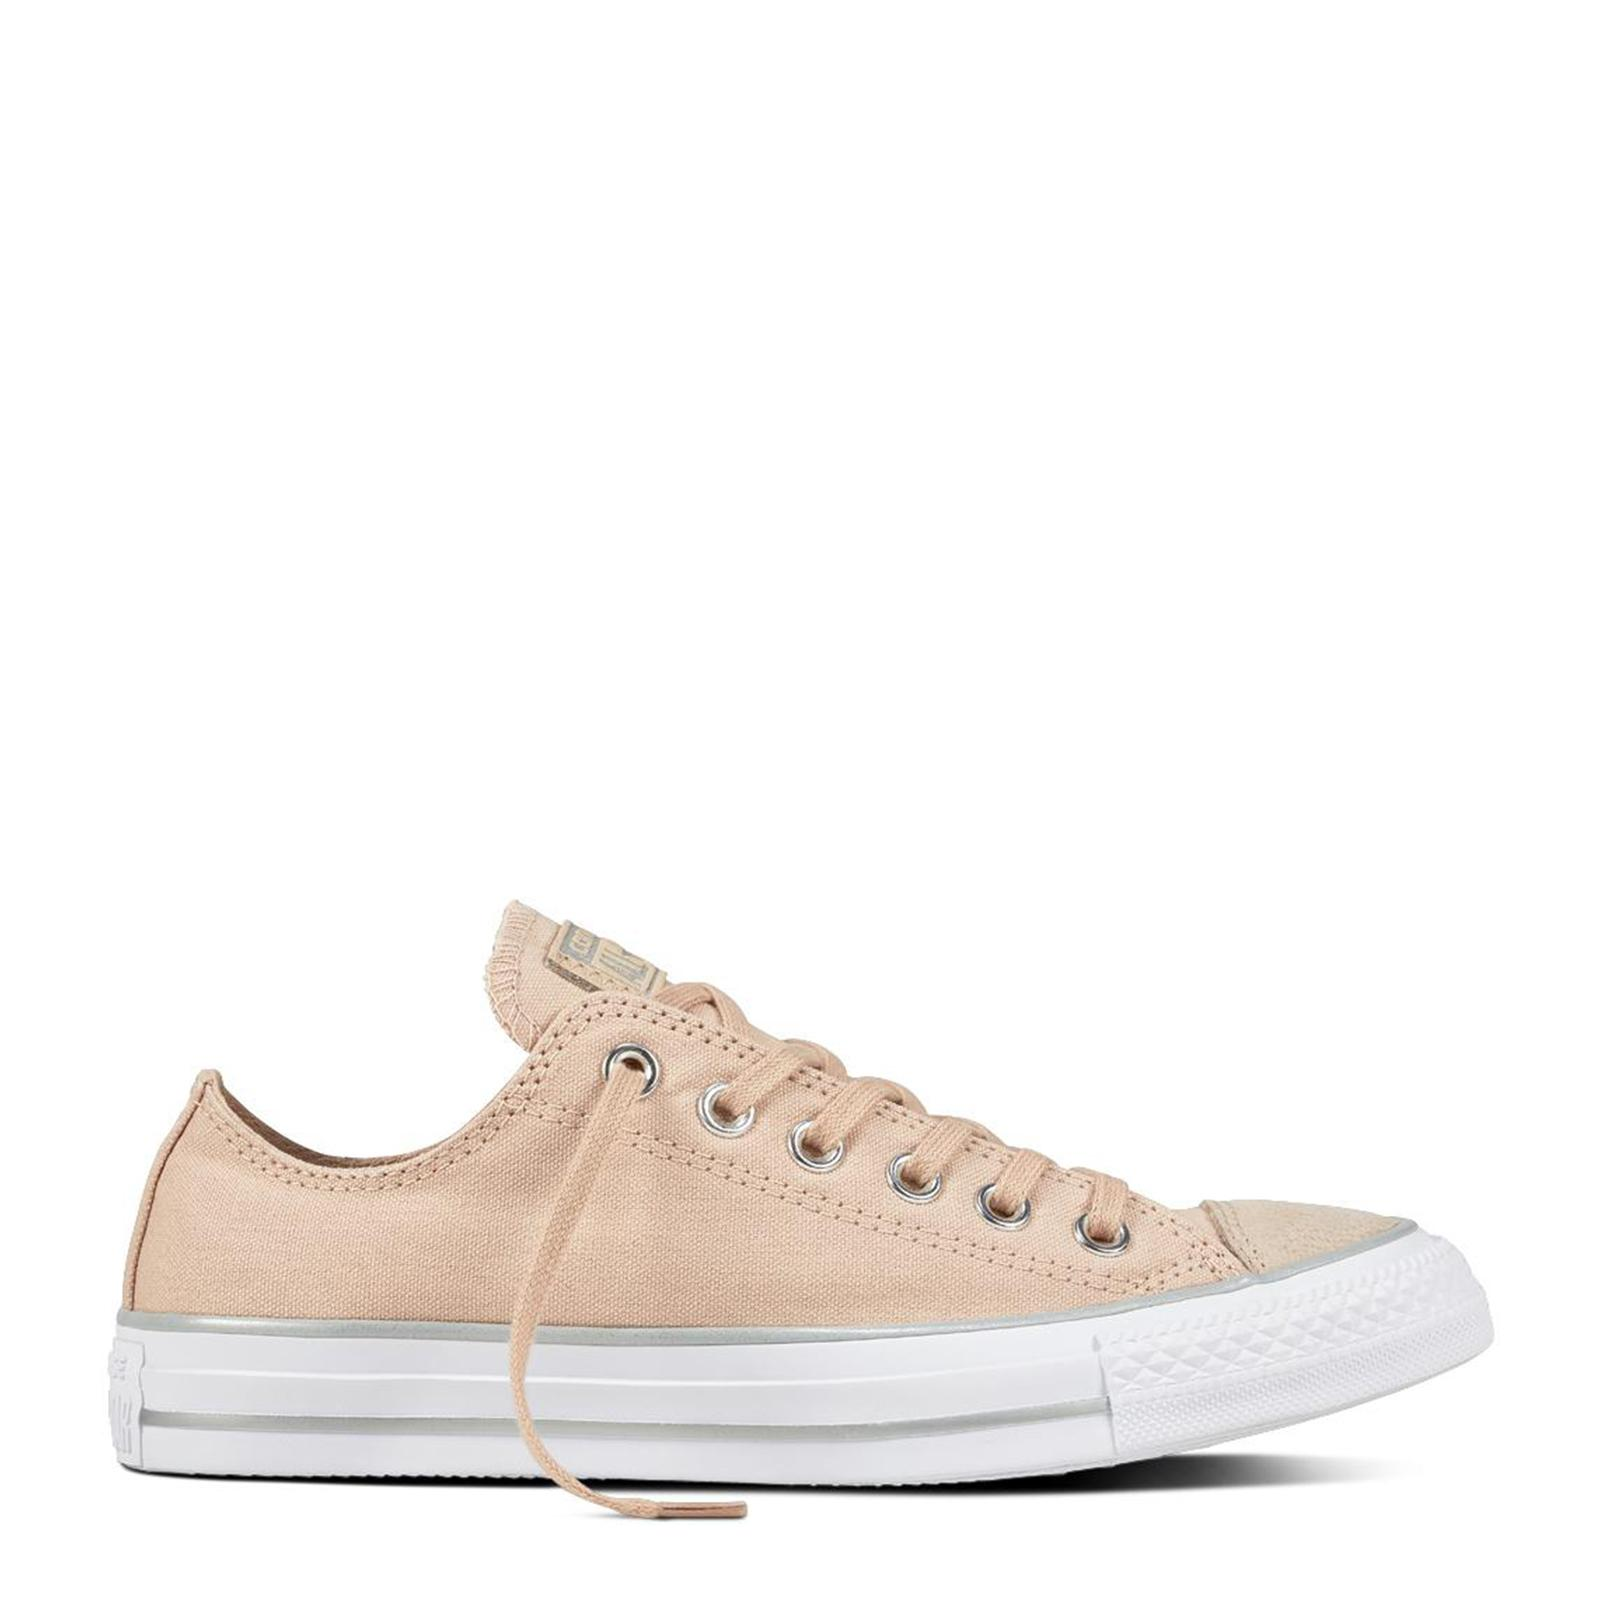 b765fb874415  SALE  CONVERSE CHUCK TAYLOR ALL STAR - OX - PARTICLE BEIGE SILVER